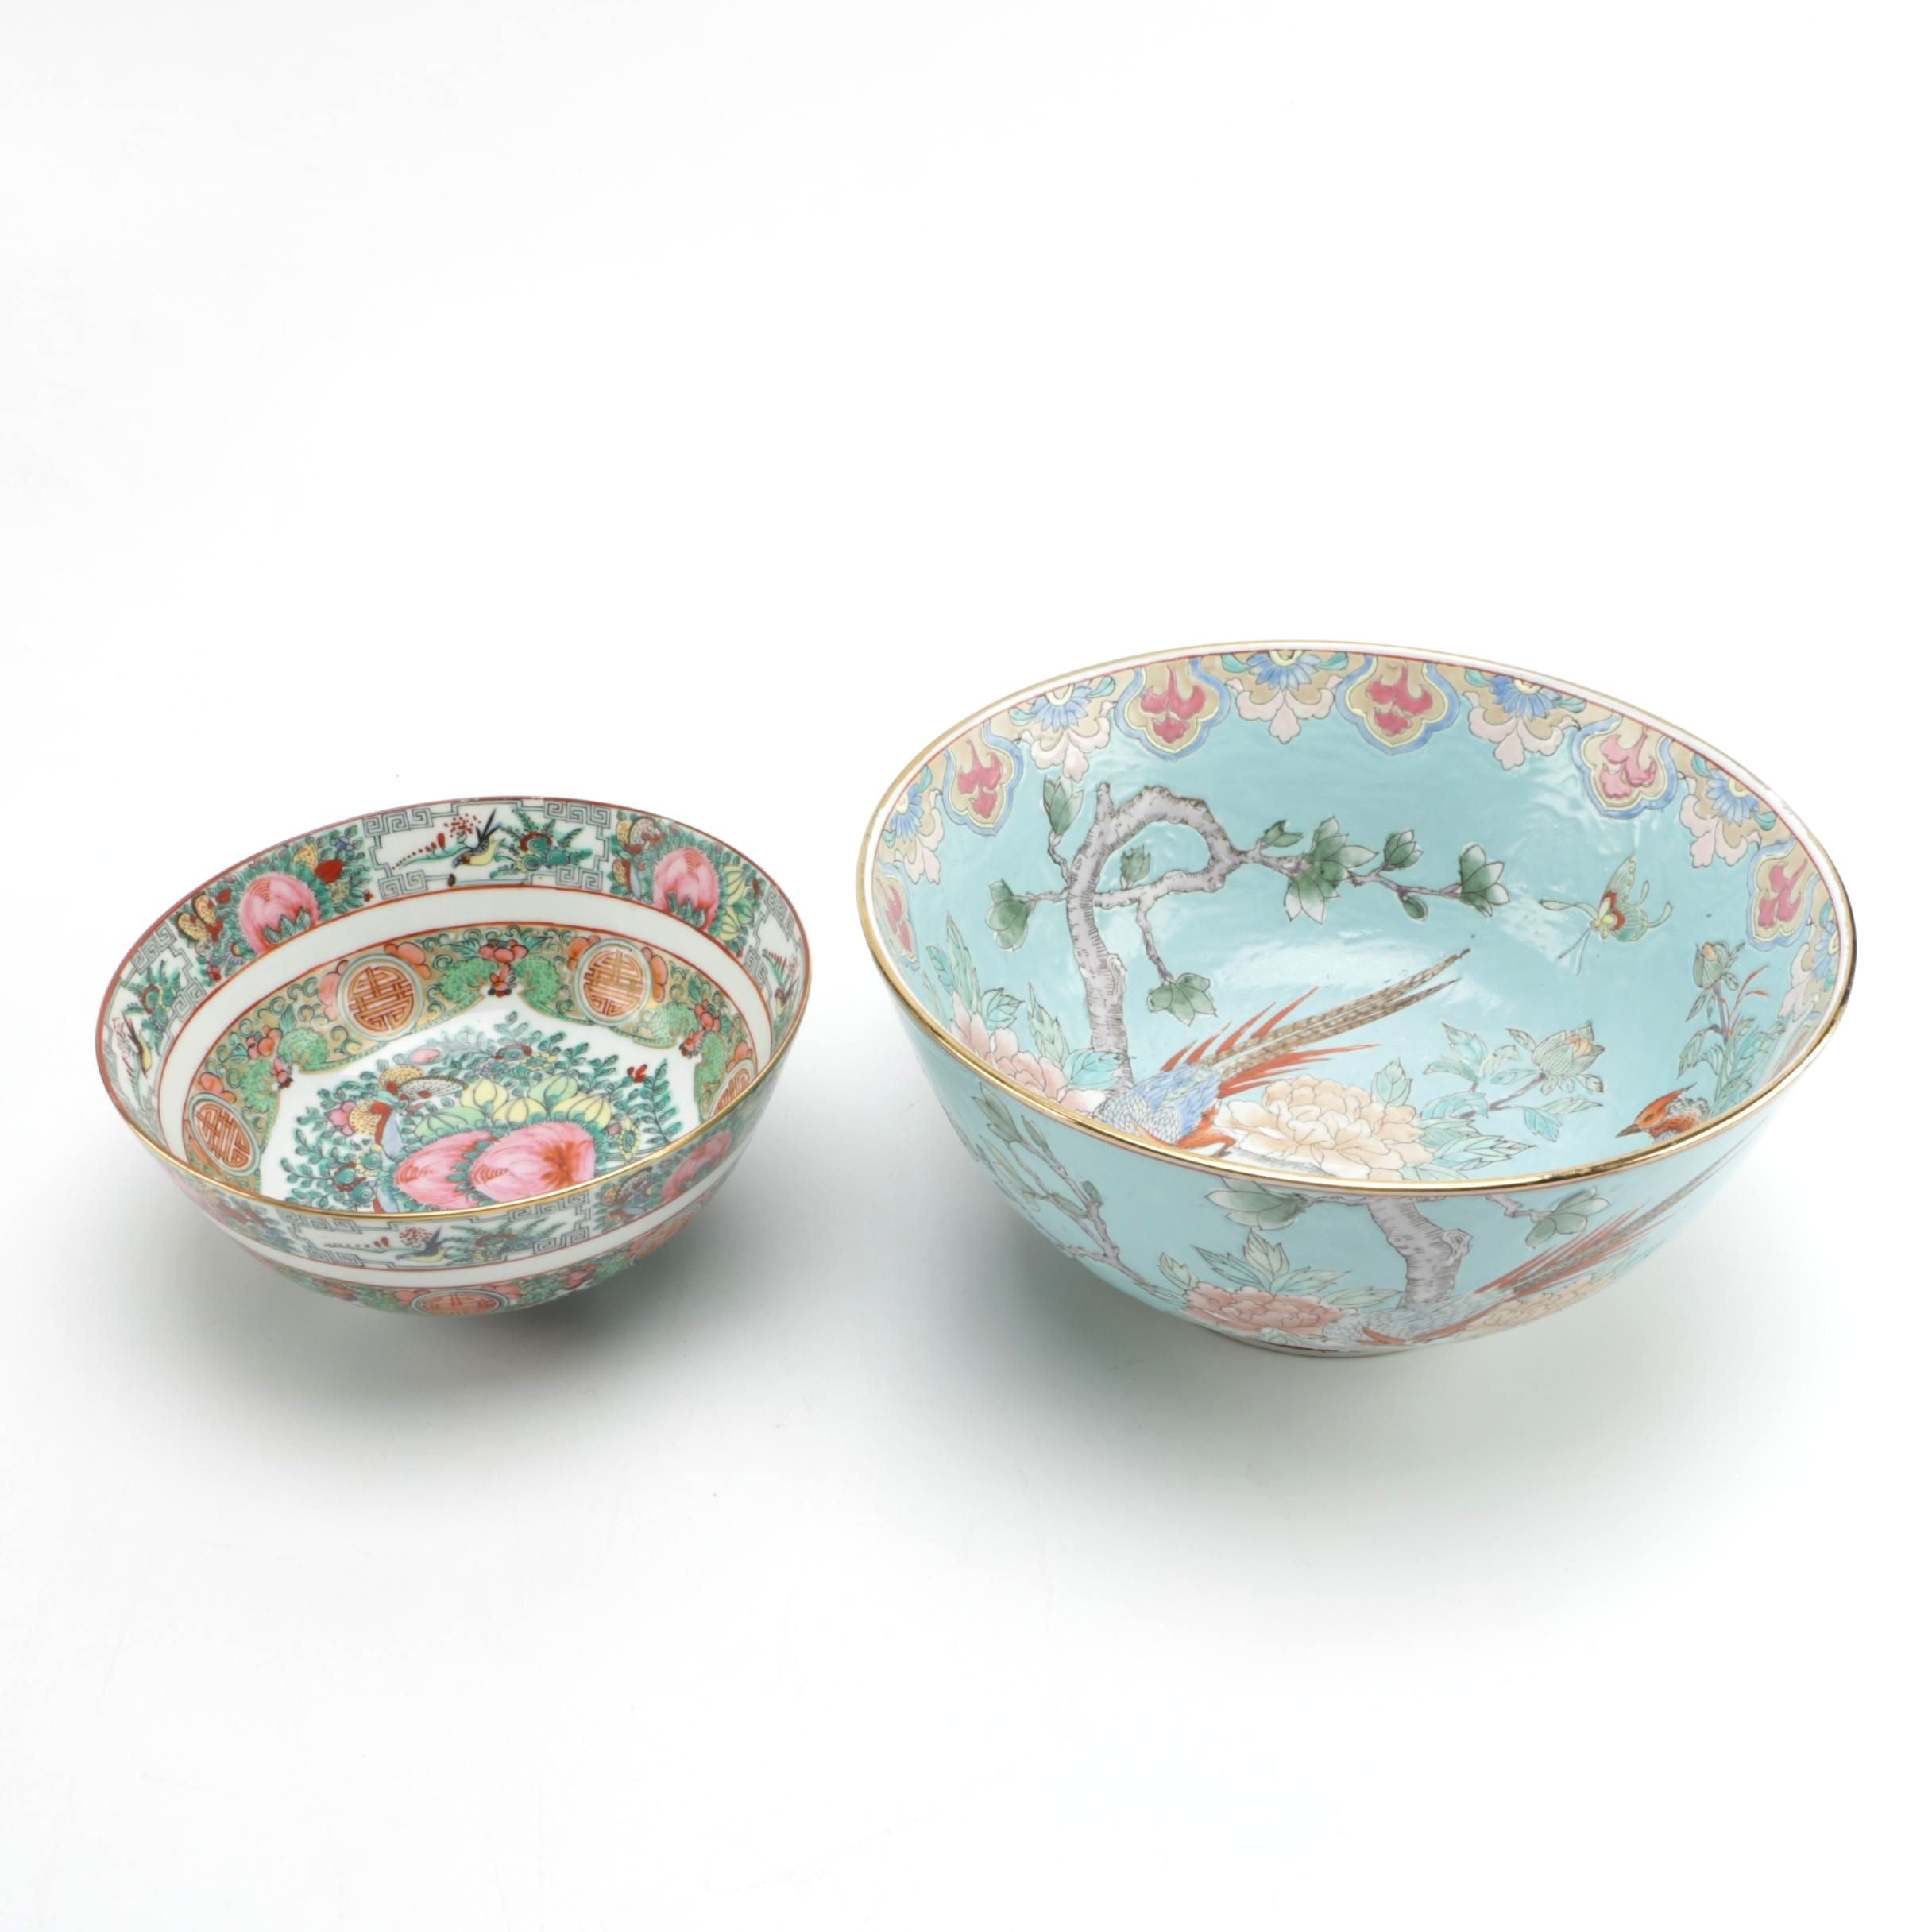 Chinese Decorated Porcelain Bowls